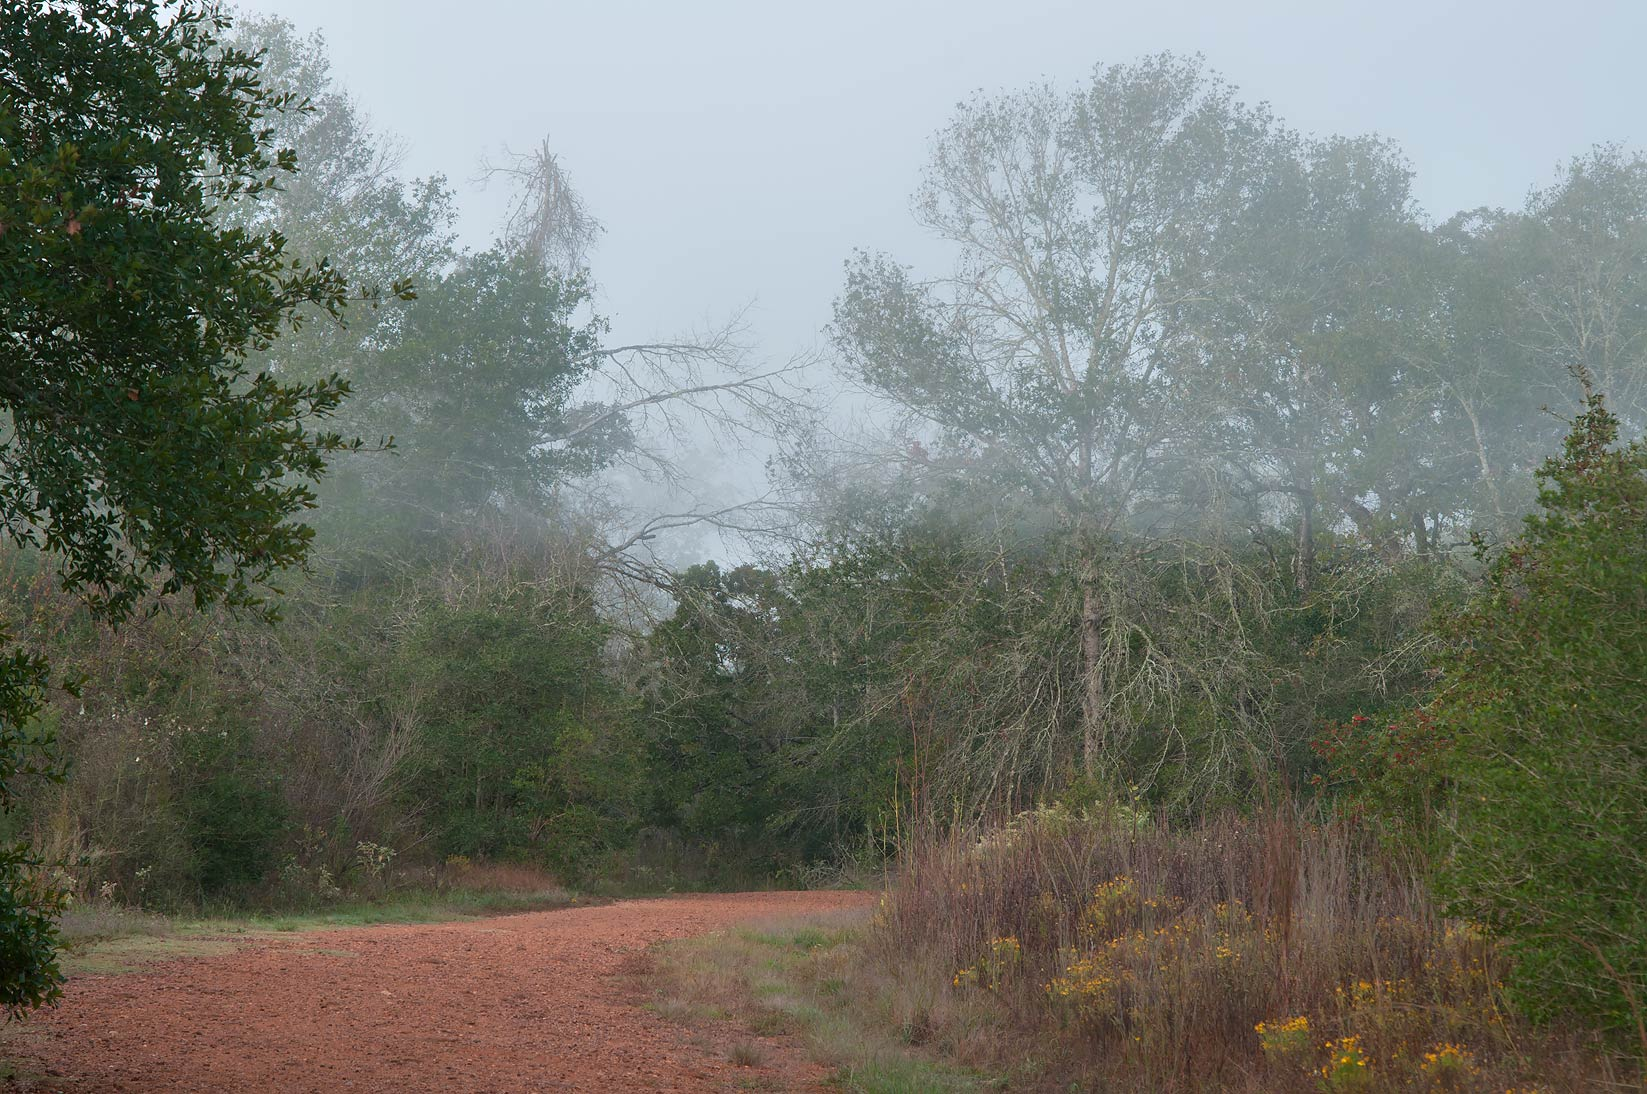 Upper layer of fog on a road in Lick Creek Park. College Station, Texas